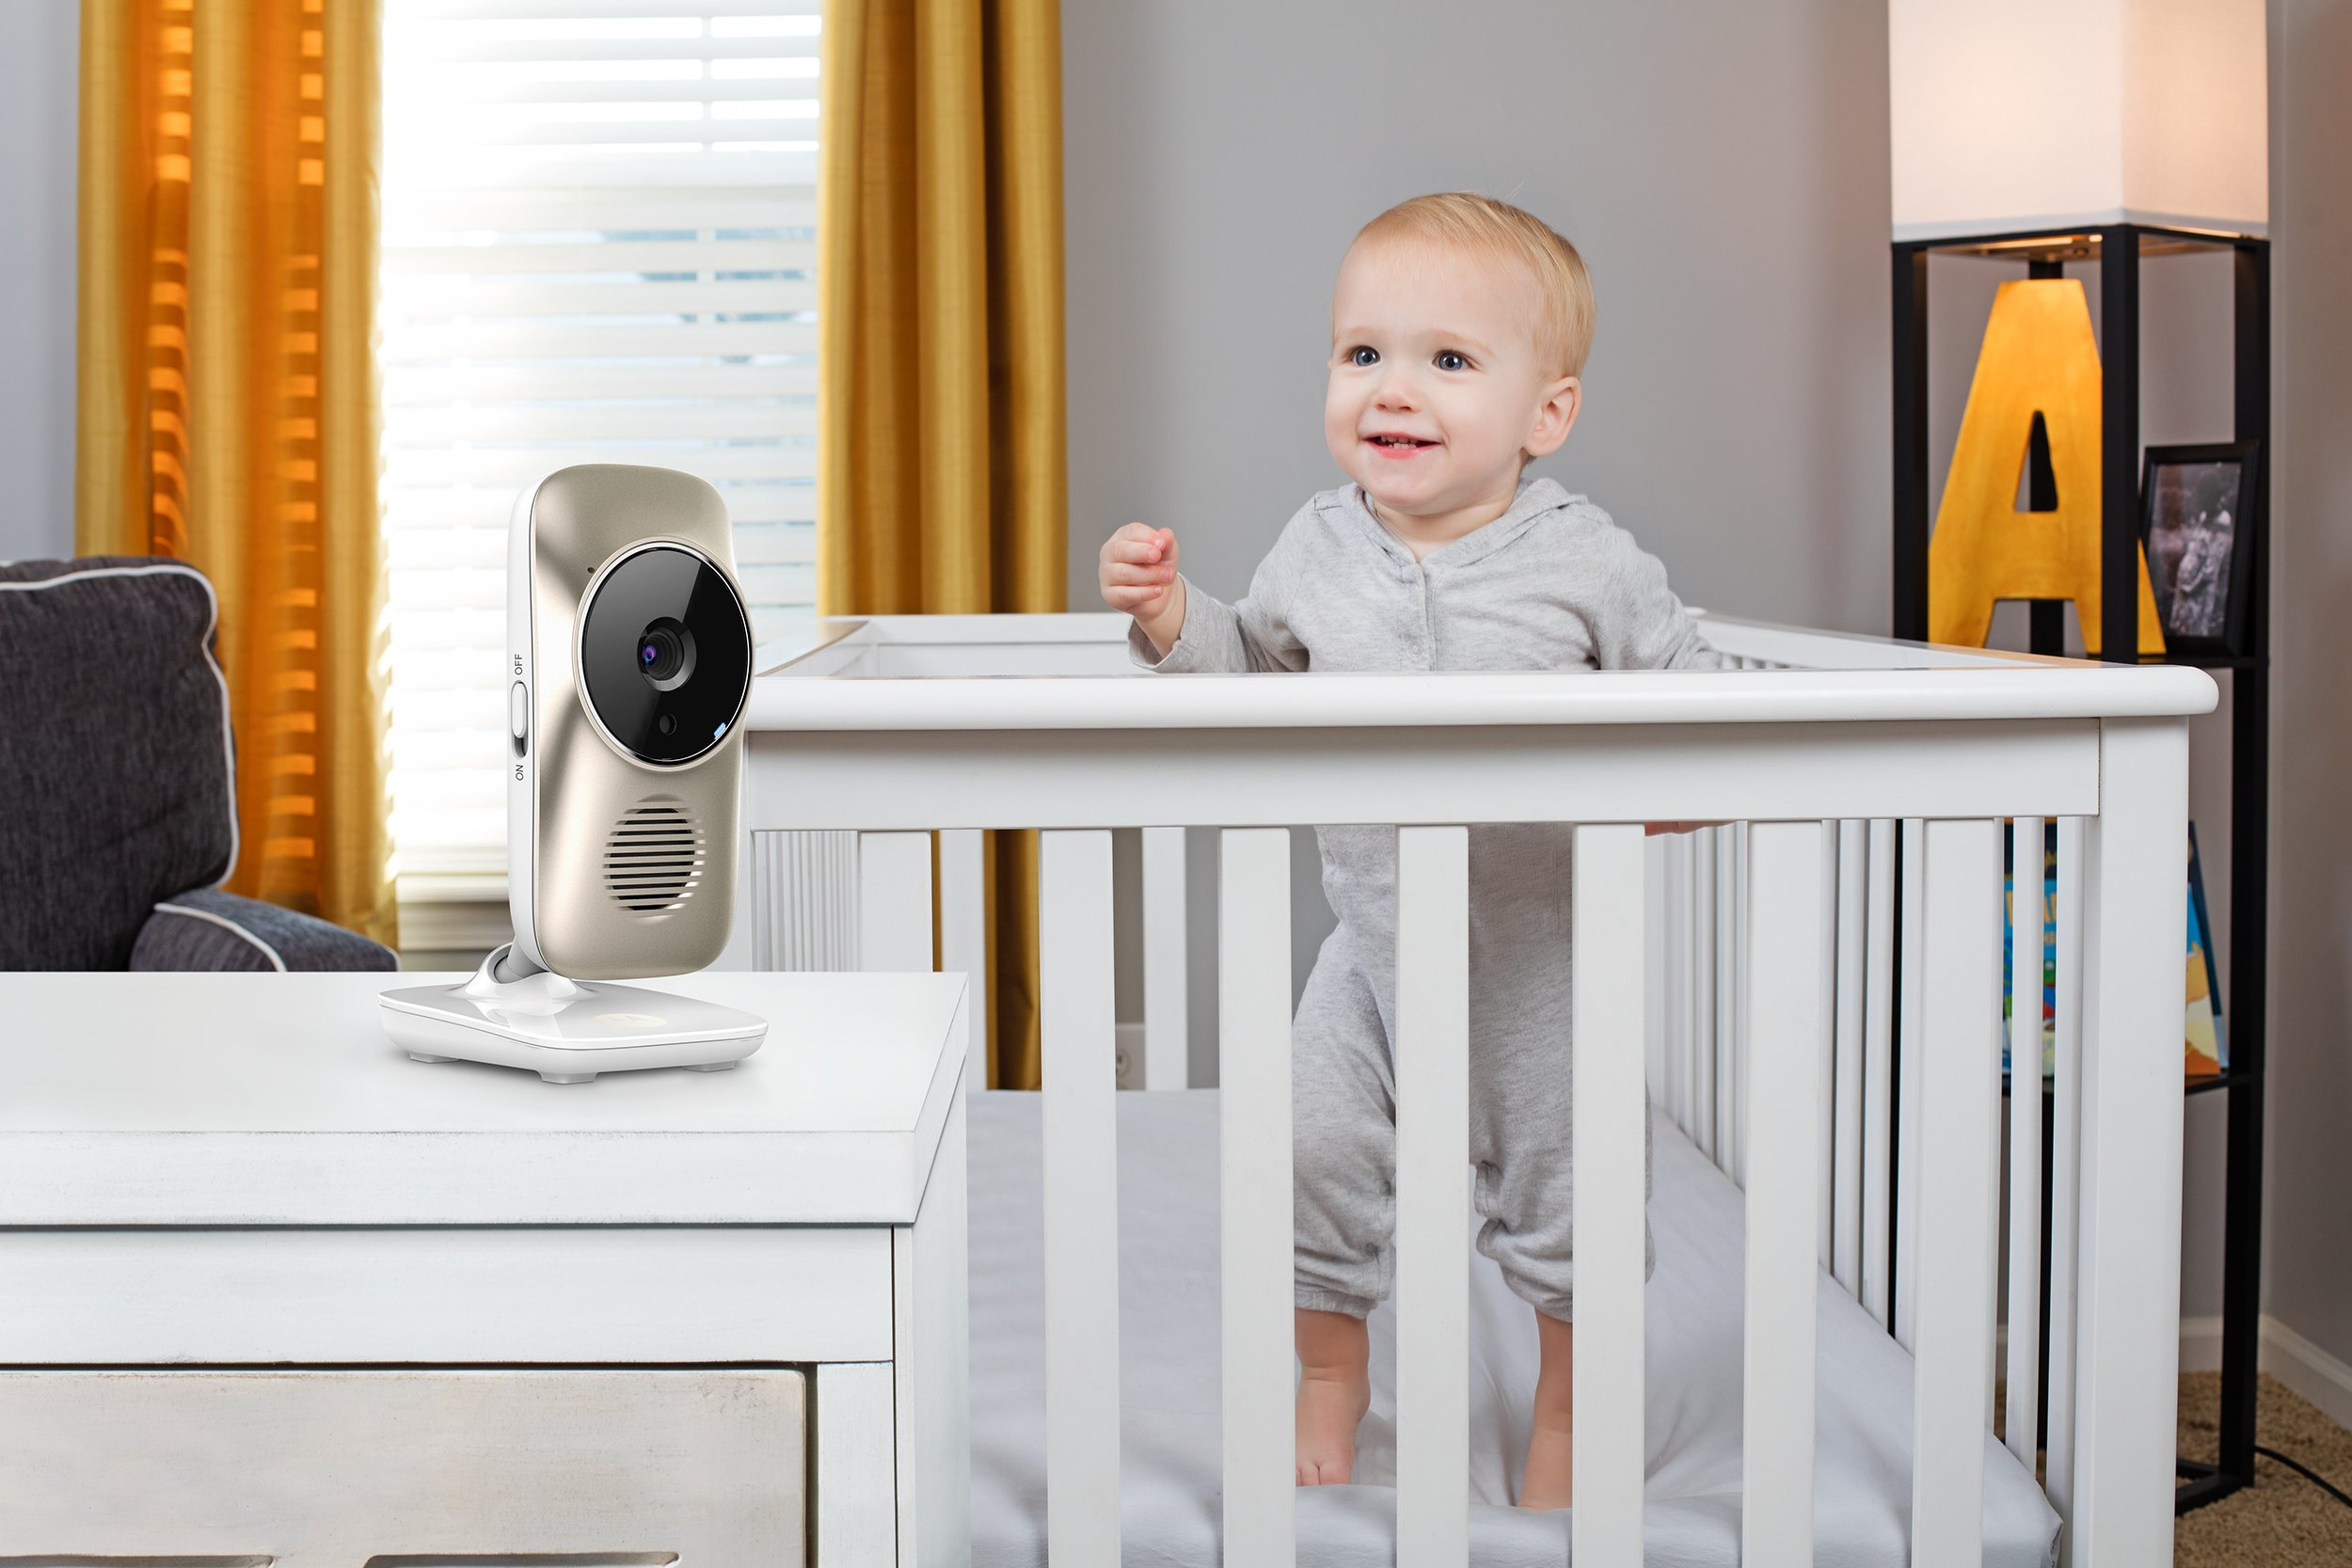 Motorola MBP845CONNECT-2 5'' Video Baby Monitor with Wi-Fi Viewing, 2 Cameras, Digital Zoom, Two-Way Audio, and Room Temperature Display by Motorola Baby (Image #5)